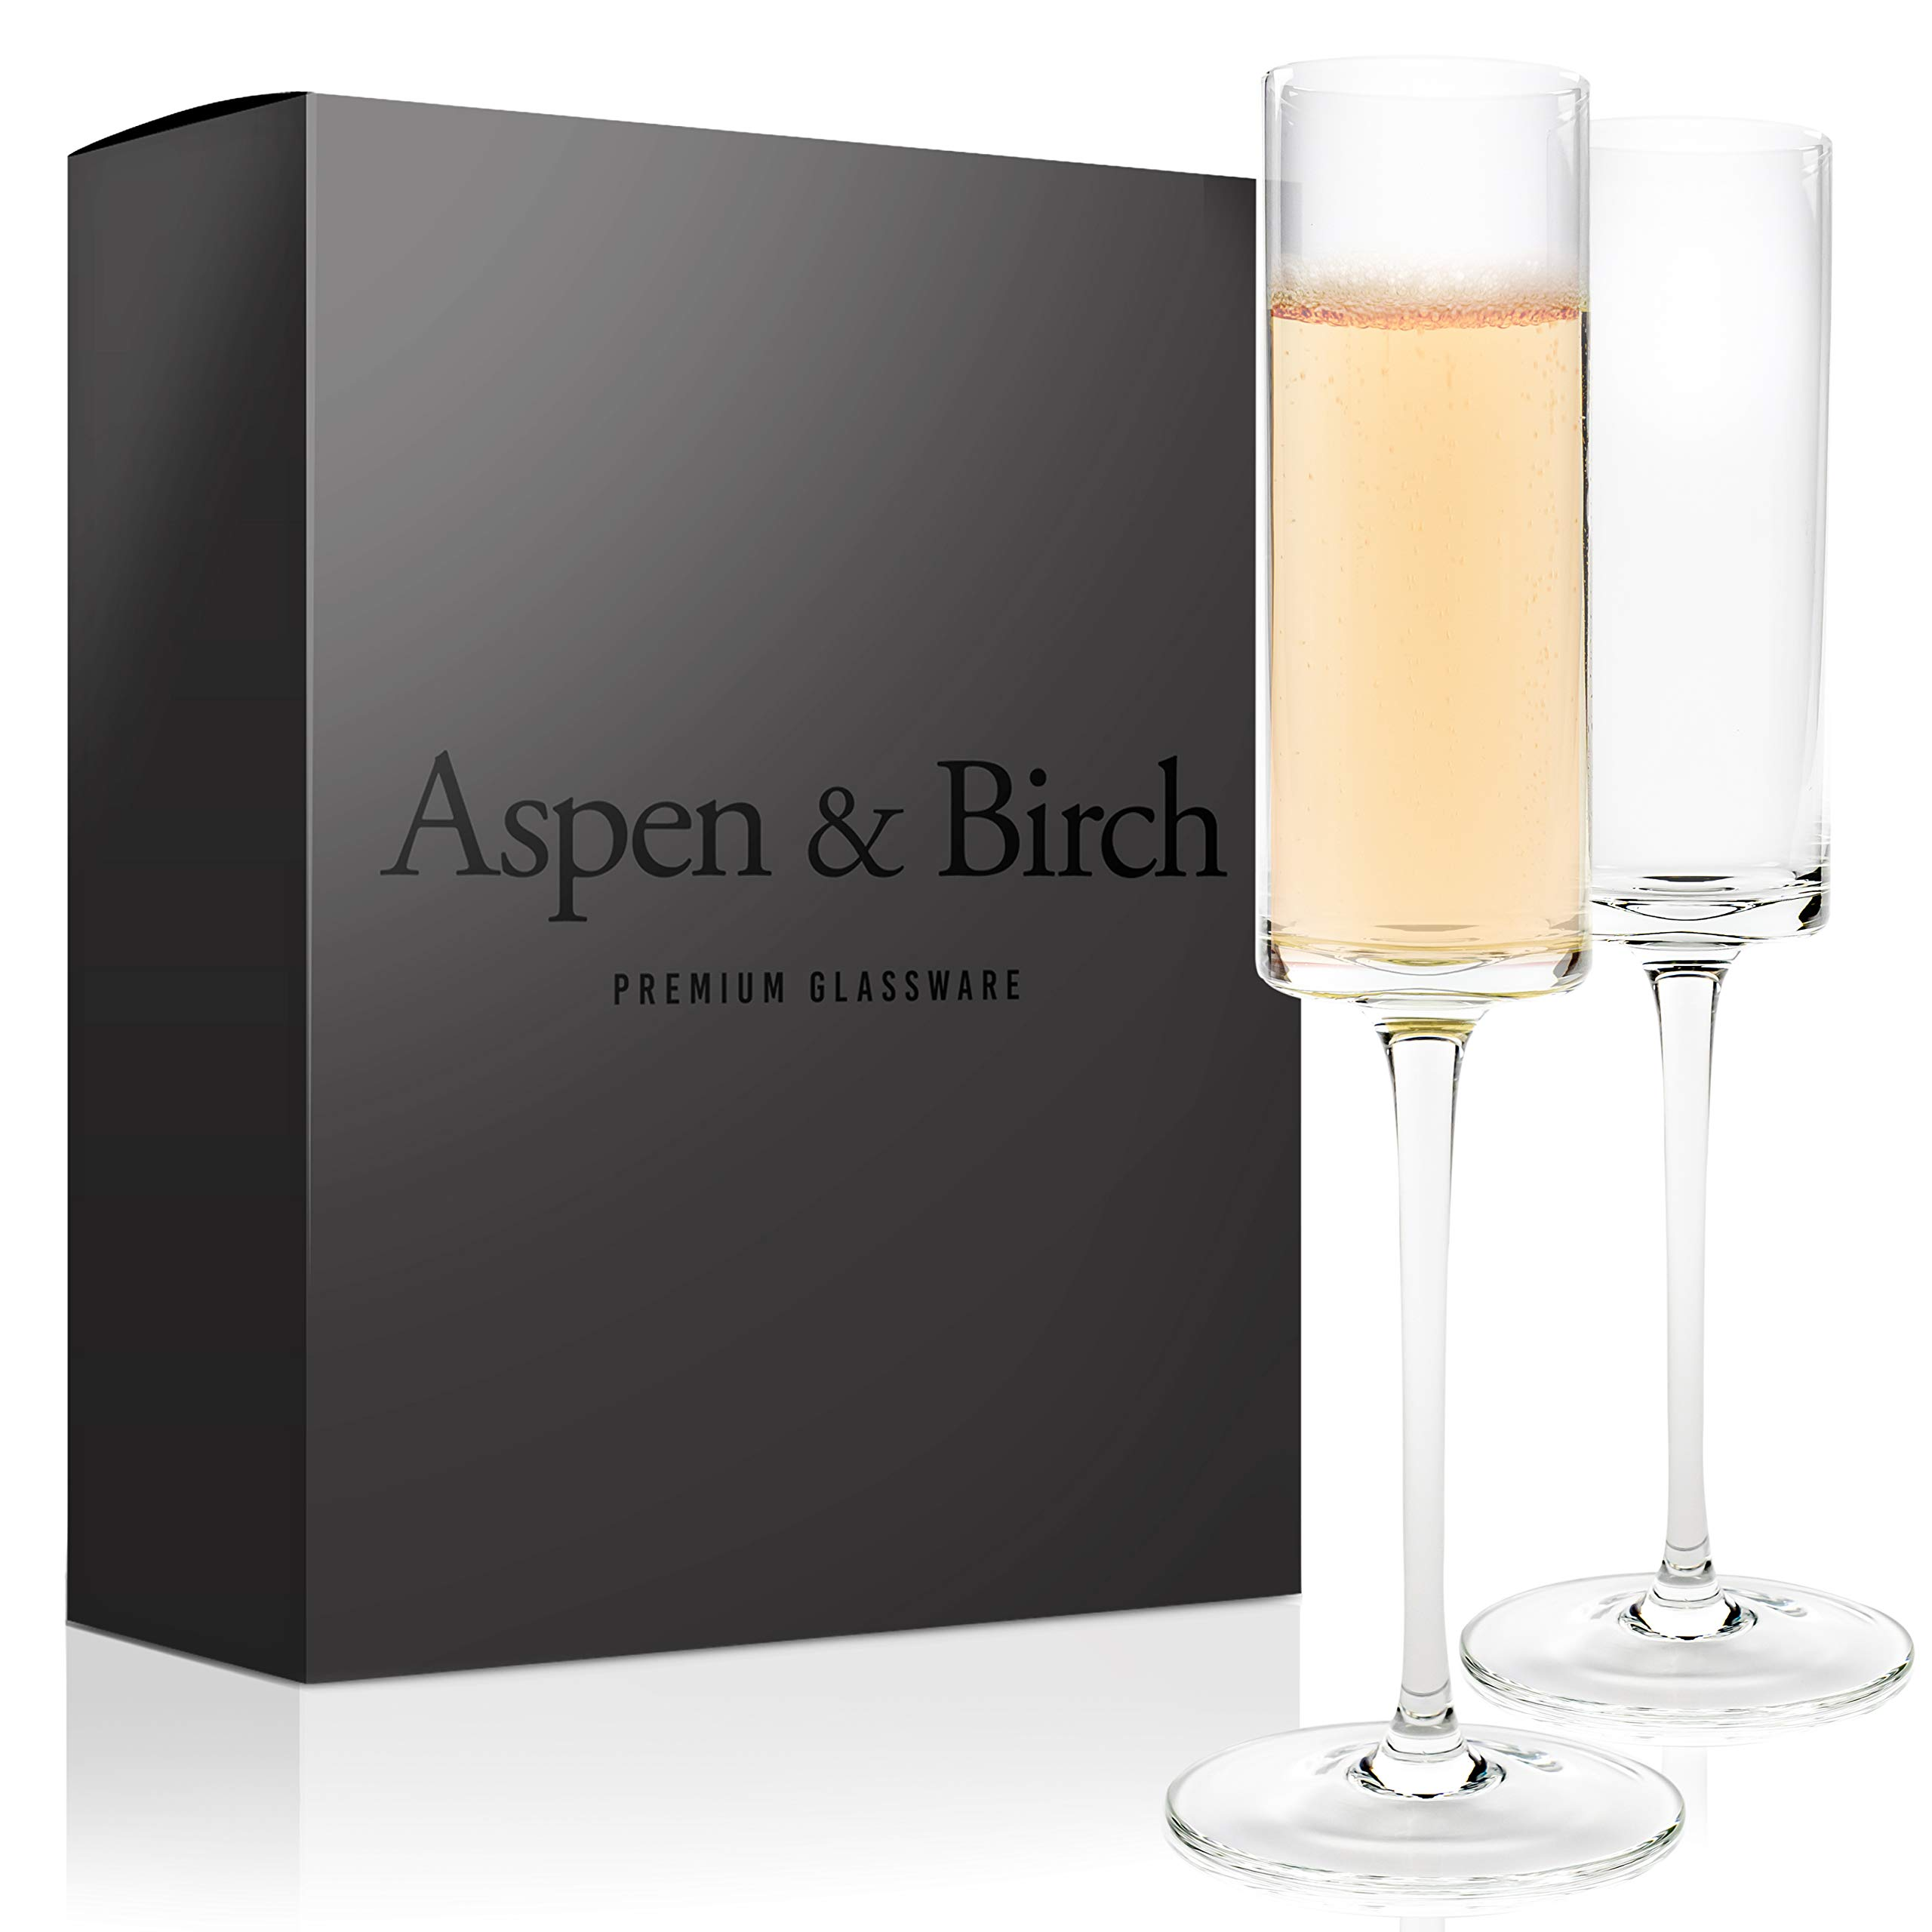 Aspen & Birch | Modern Champagne Flutes Set of 6 | Champagne Glasses | Mimosa Glasses | Hand Blown Glass Champagne Flutes | Clear | 6oz | 100% Lead Free Crystal Stemware | by Aspen & Birch